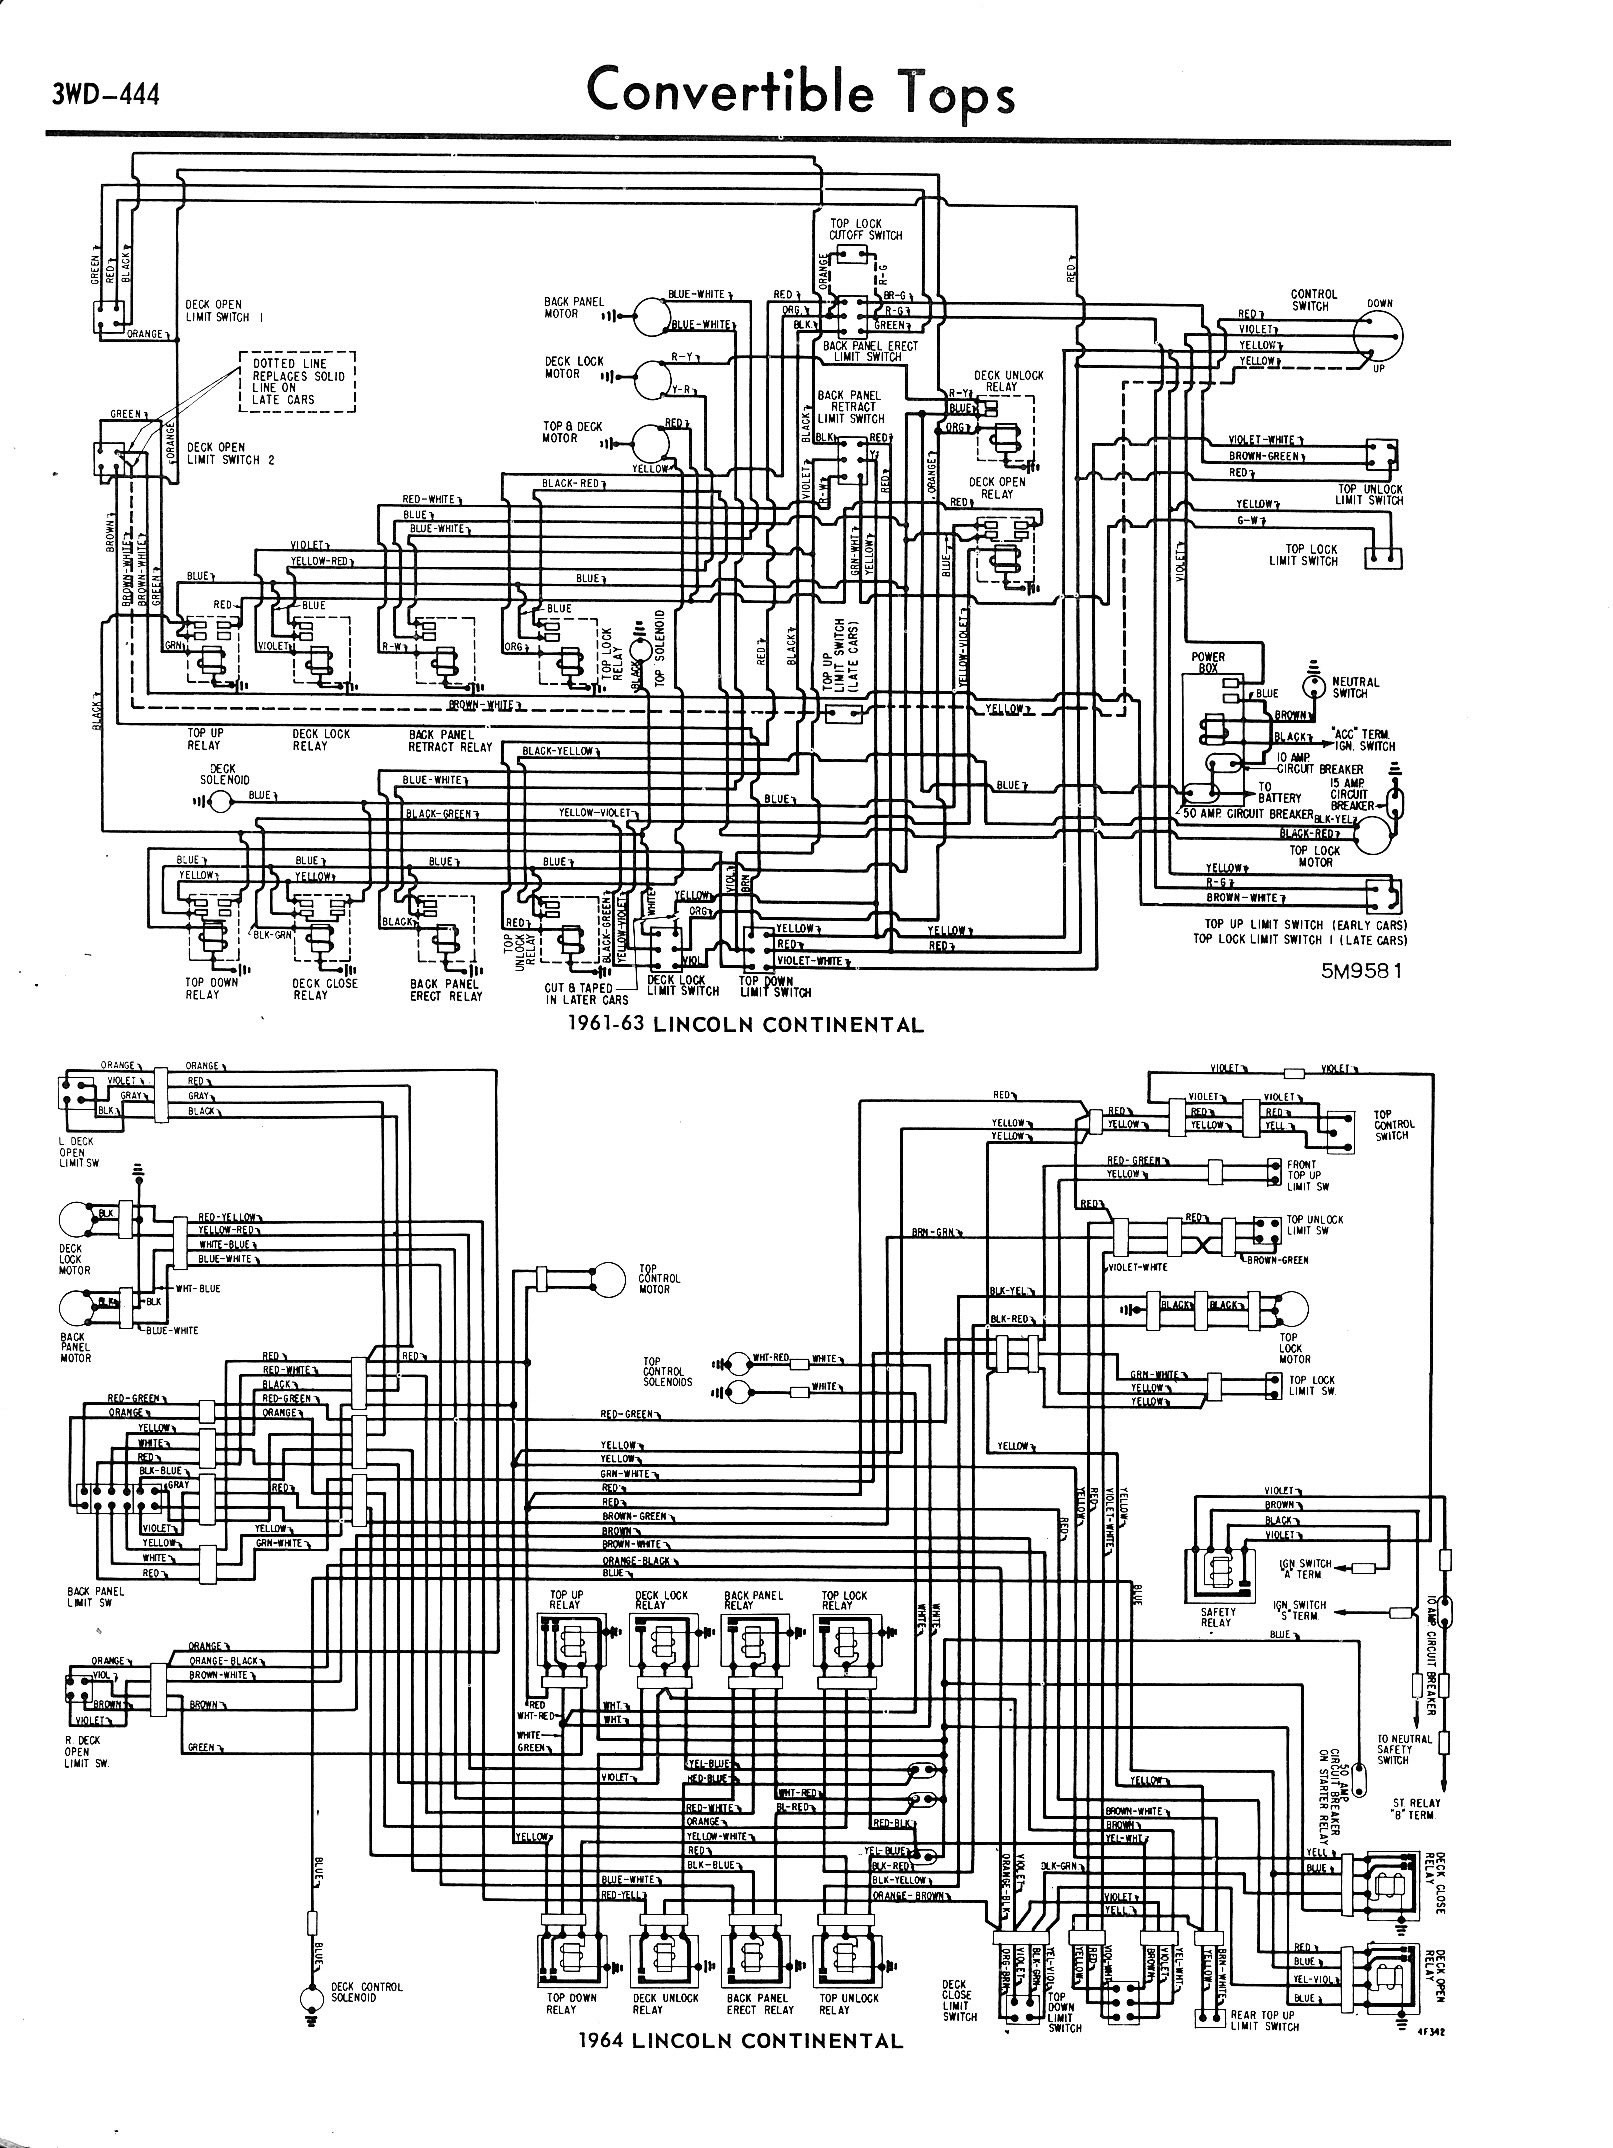 1990 Lincoln Town Car Wiring Diagram 1990 Ford F 150 Wiring Diagram 94 Lincoln  Continental Wiring-Diagram 1990 Lincoln Continental Radio Wiring Diagram